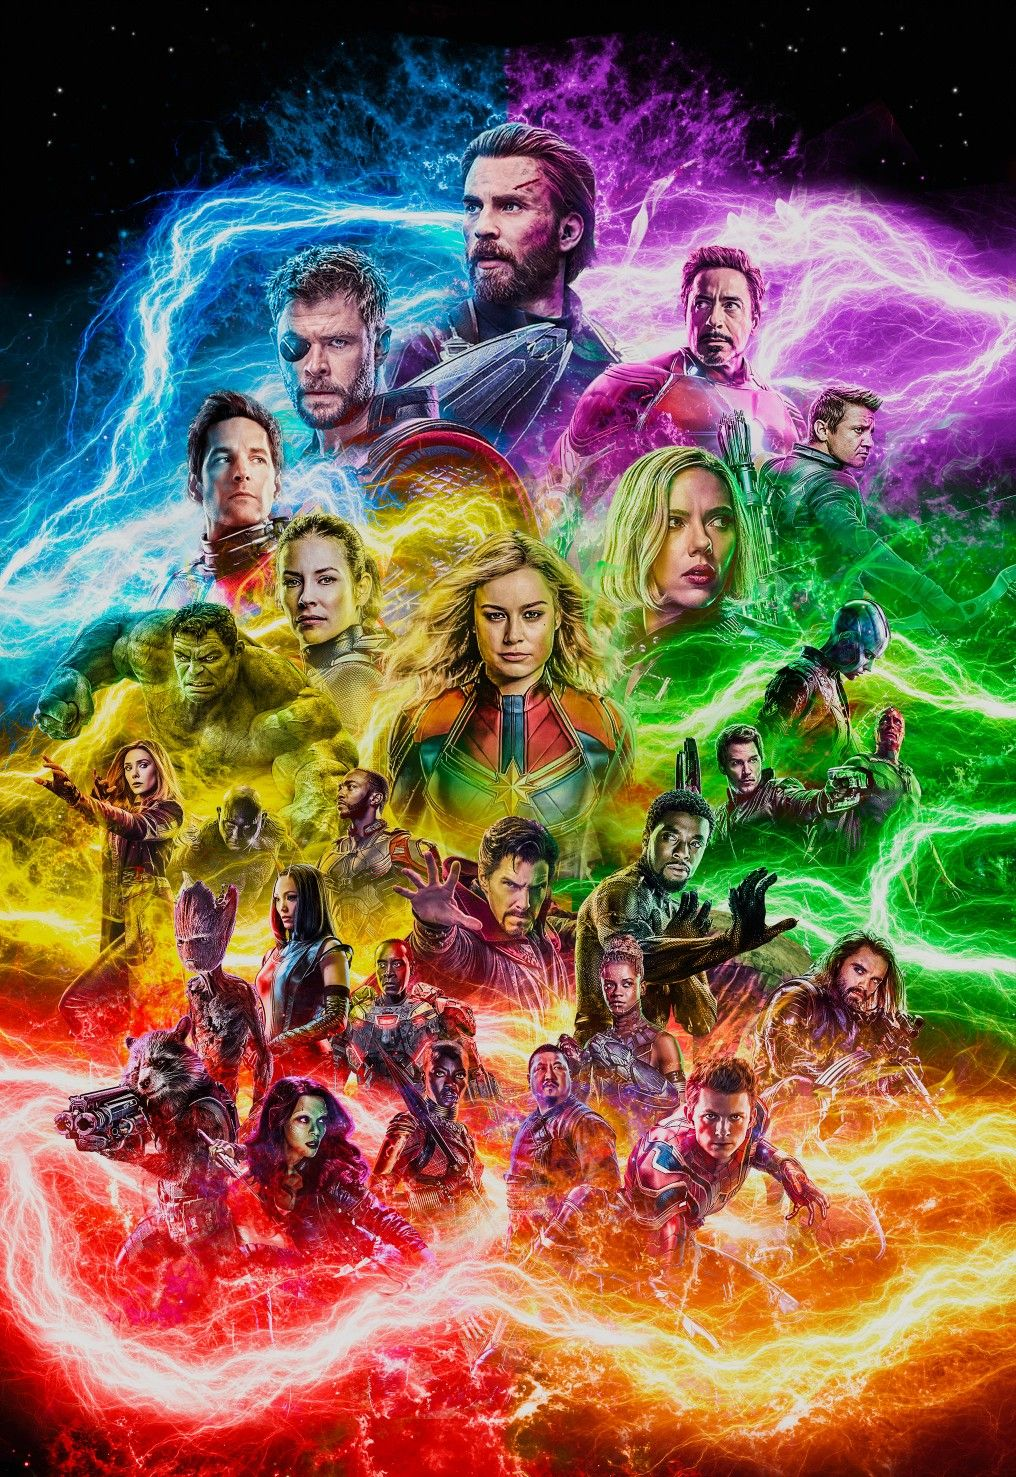 We have added the latest collection of Avengers 4 Endgame 1016x1477